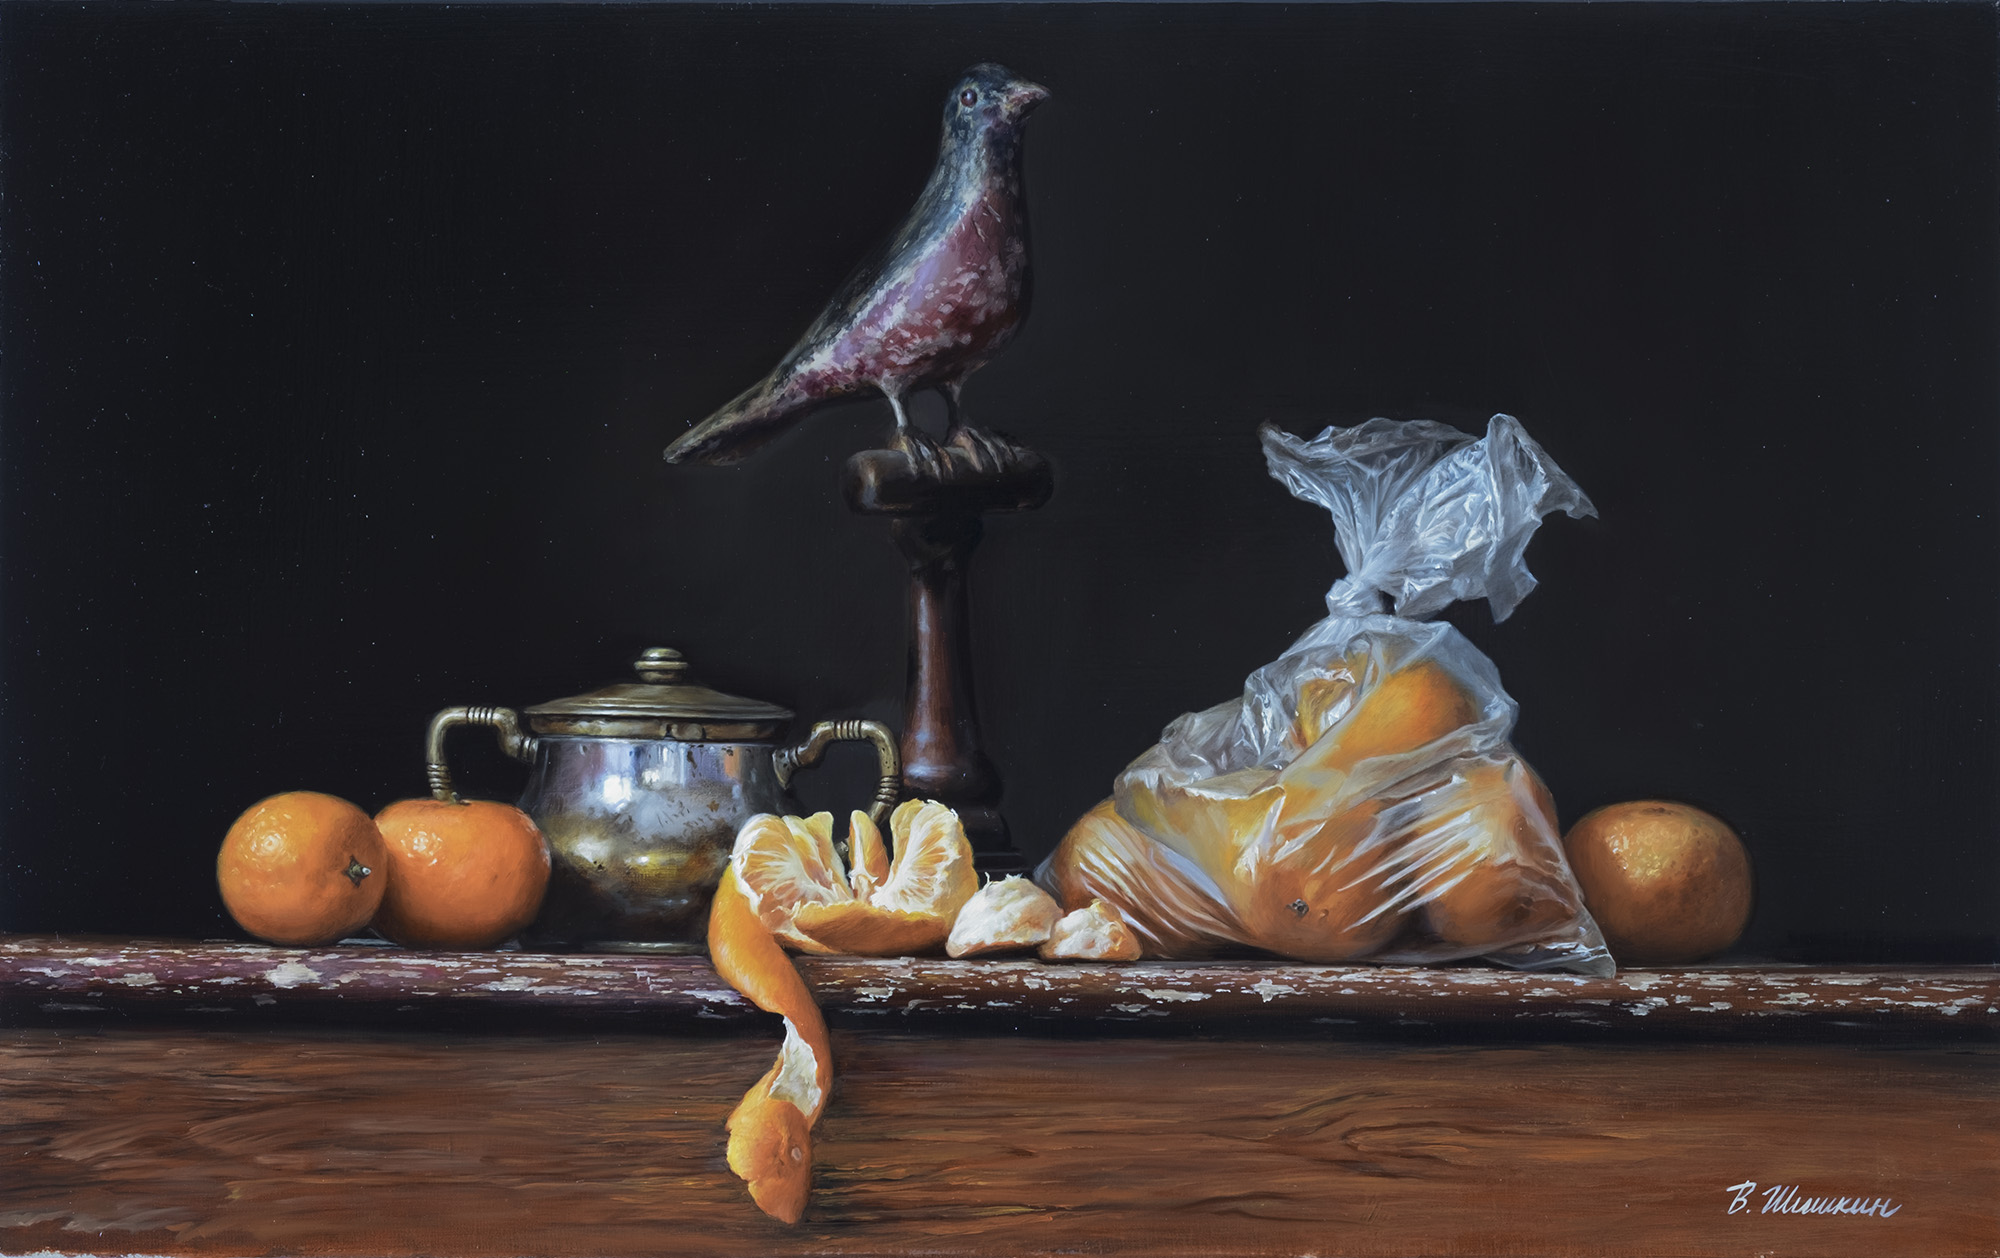 Still life with a bird